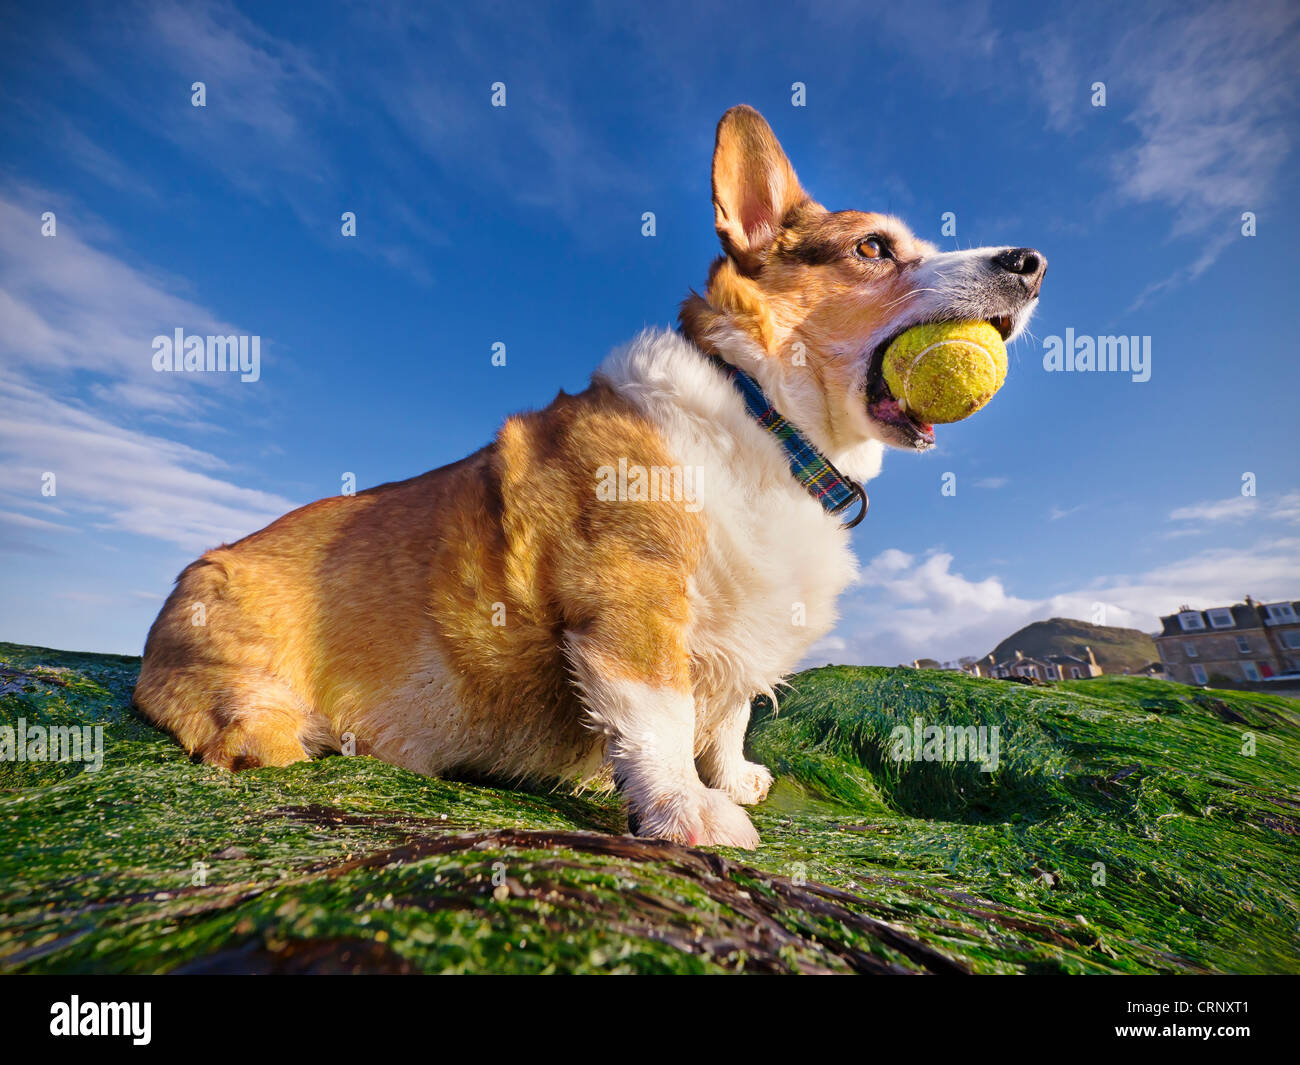 A welsh cardigan corgi (dog) holding a tennis ball in its mouth, playing on a Scottish beach. - Stock Image